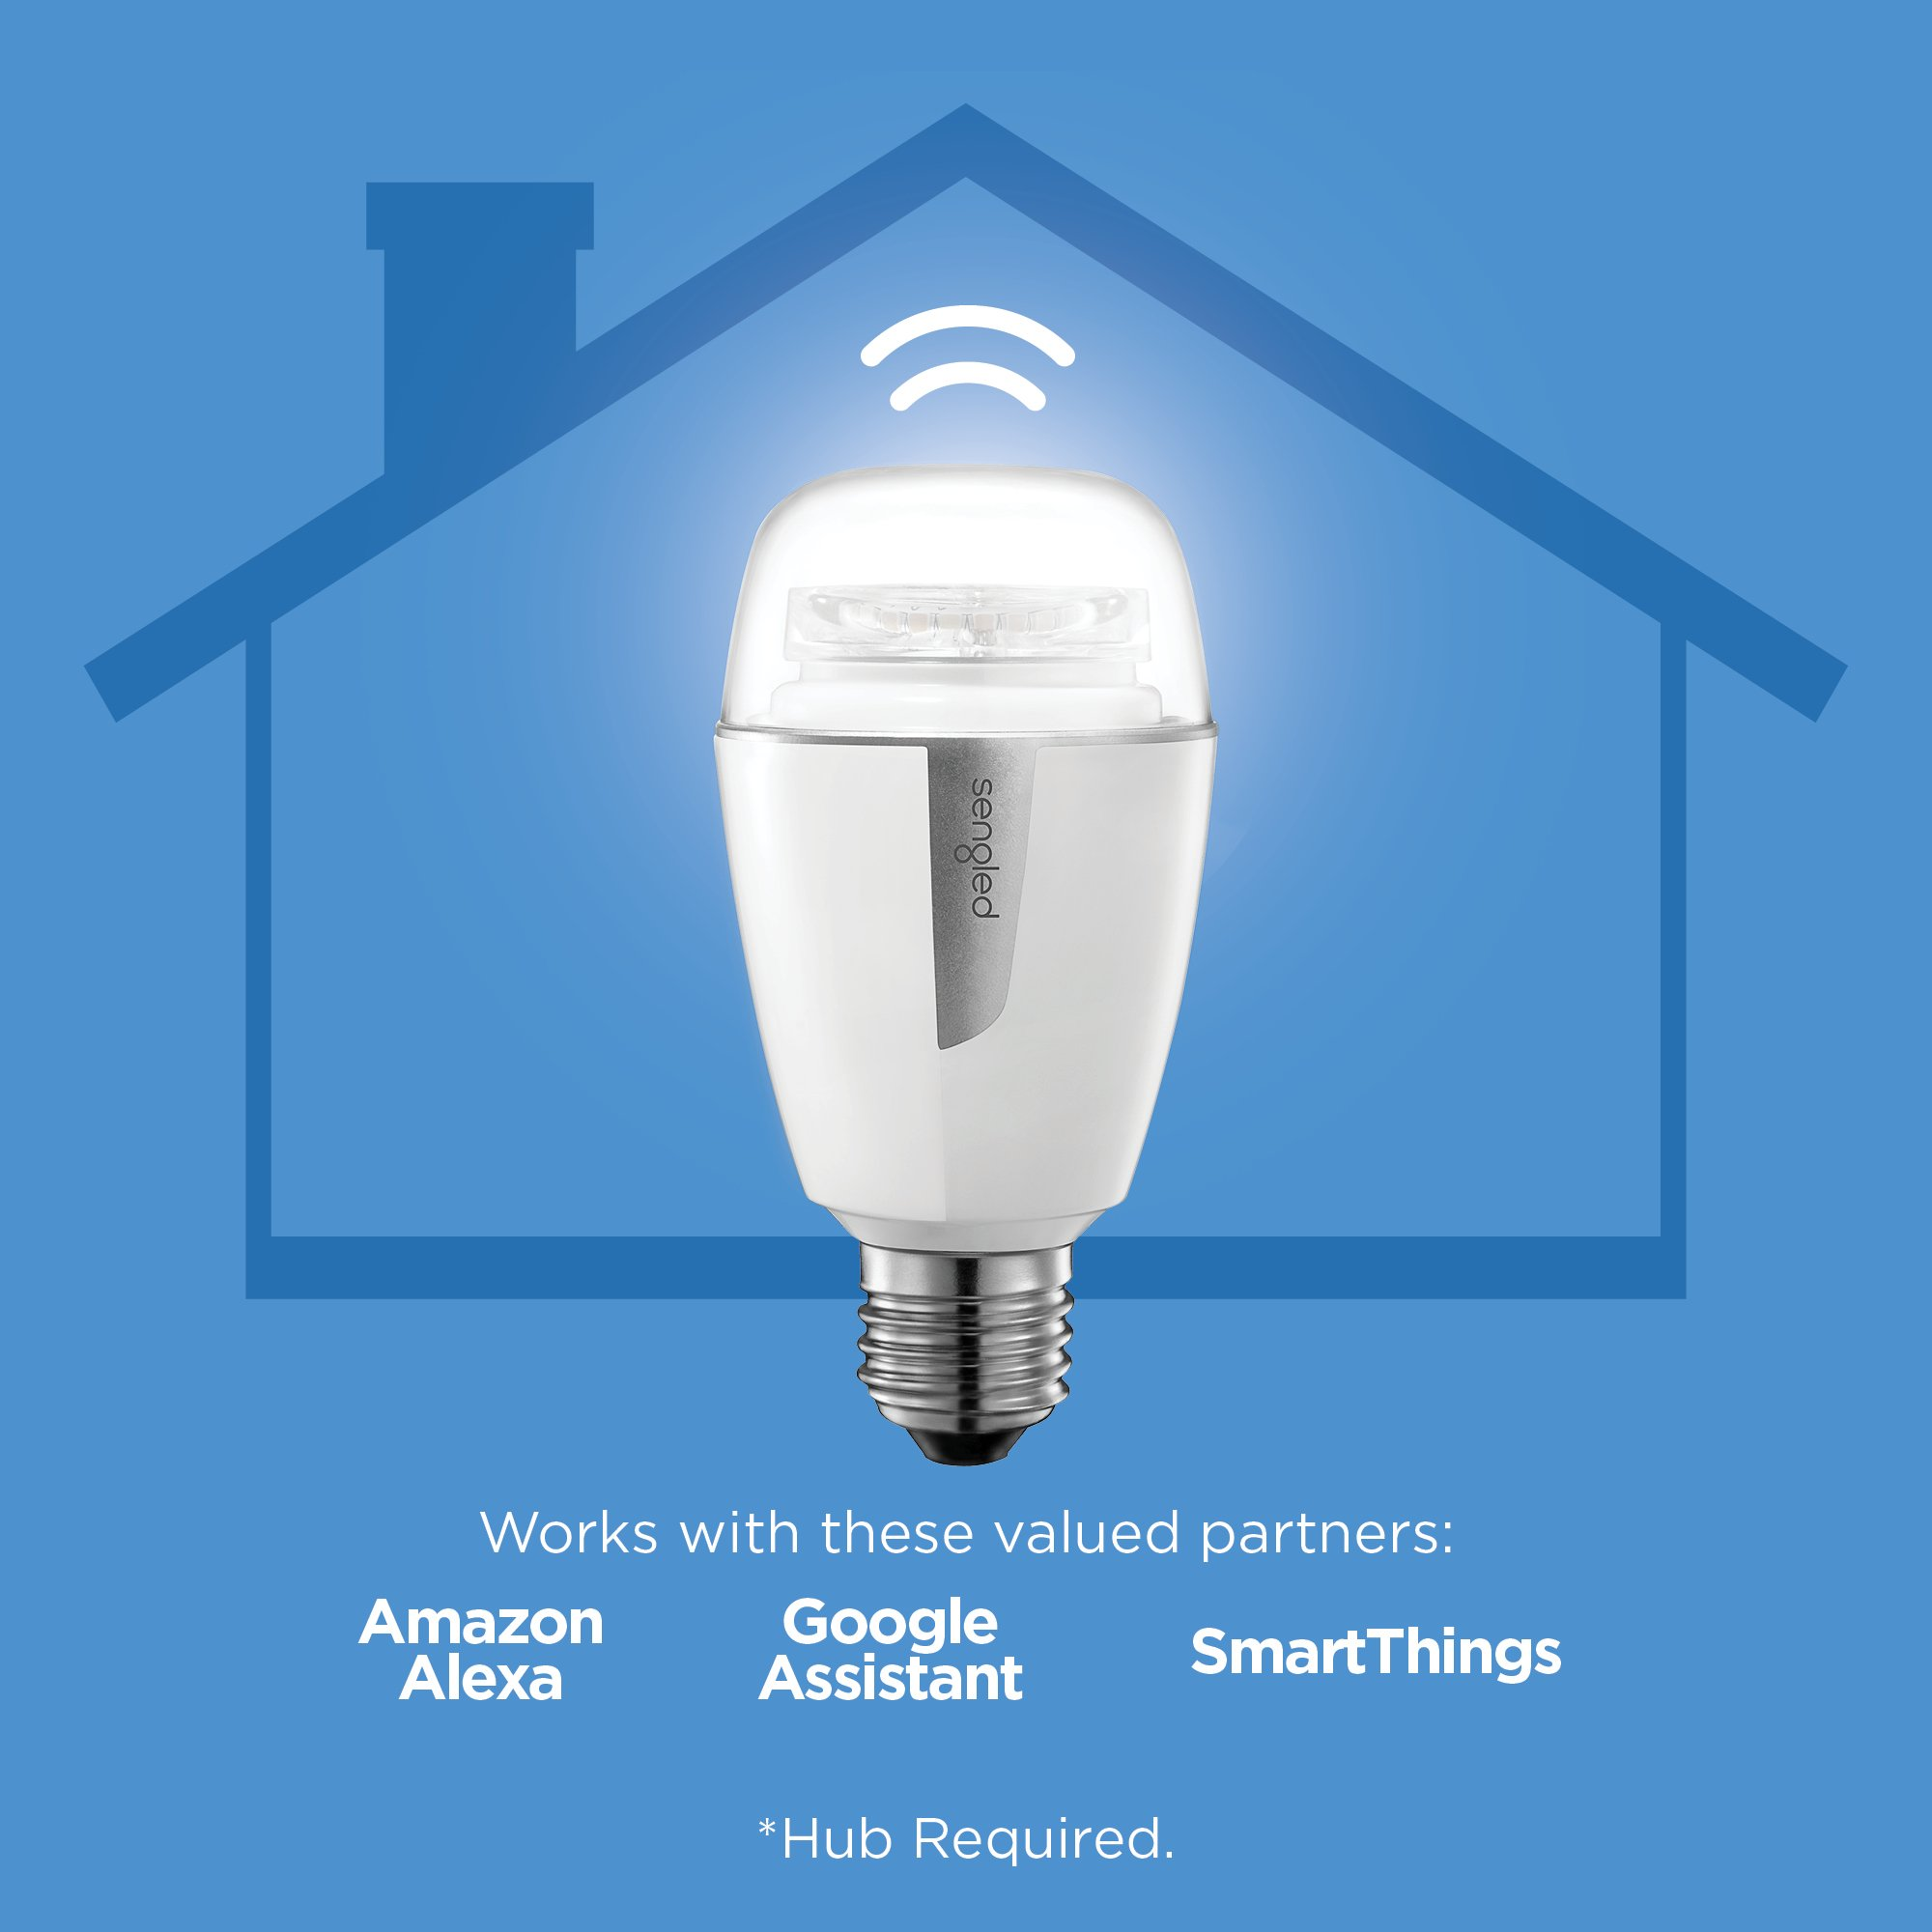 Sengled Element Plus Smart LED Light Bulb (Hub Required), A19 Dimmable LED Light Tunable White 2700-6500K 60W Equivalent, Works with Alexa/Echo Plus/SmartThings/Google Assistant, 1 Pack by Sengled (Image #2)